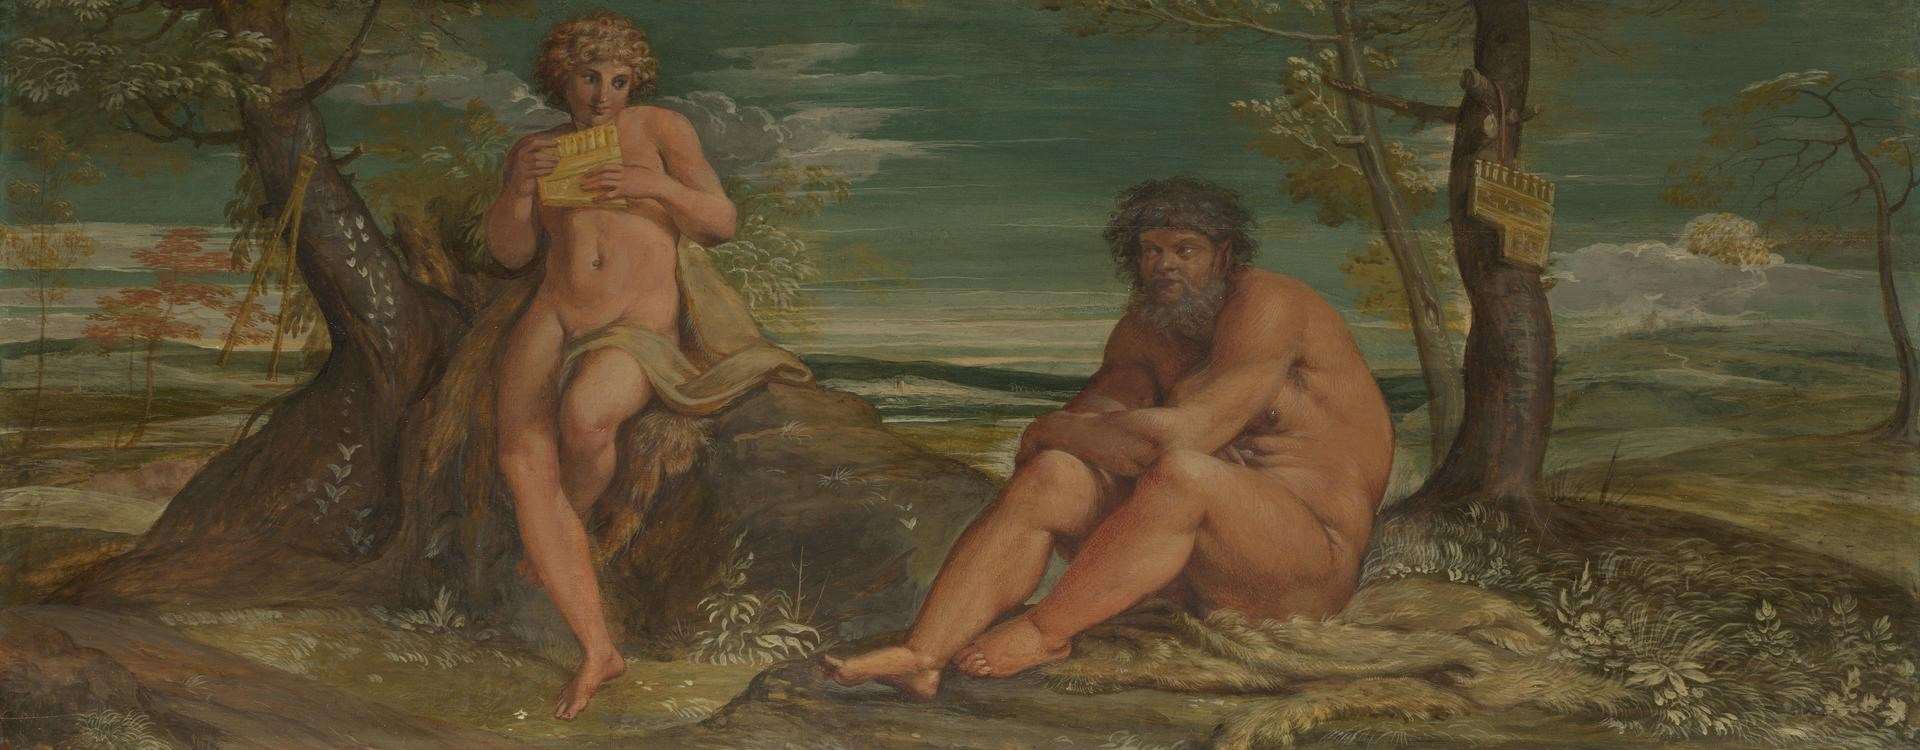 Marsyas and Olympus by Annibale Carracci